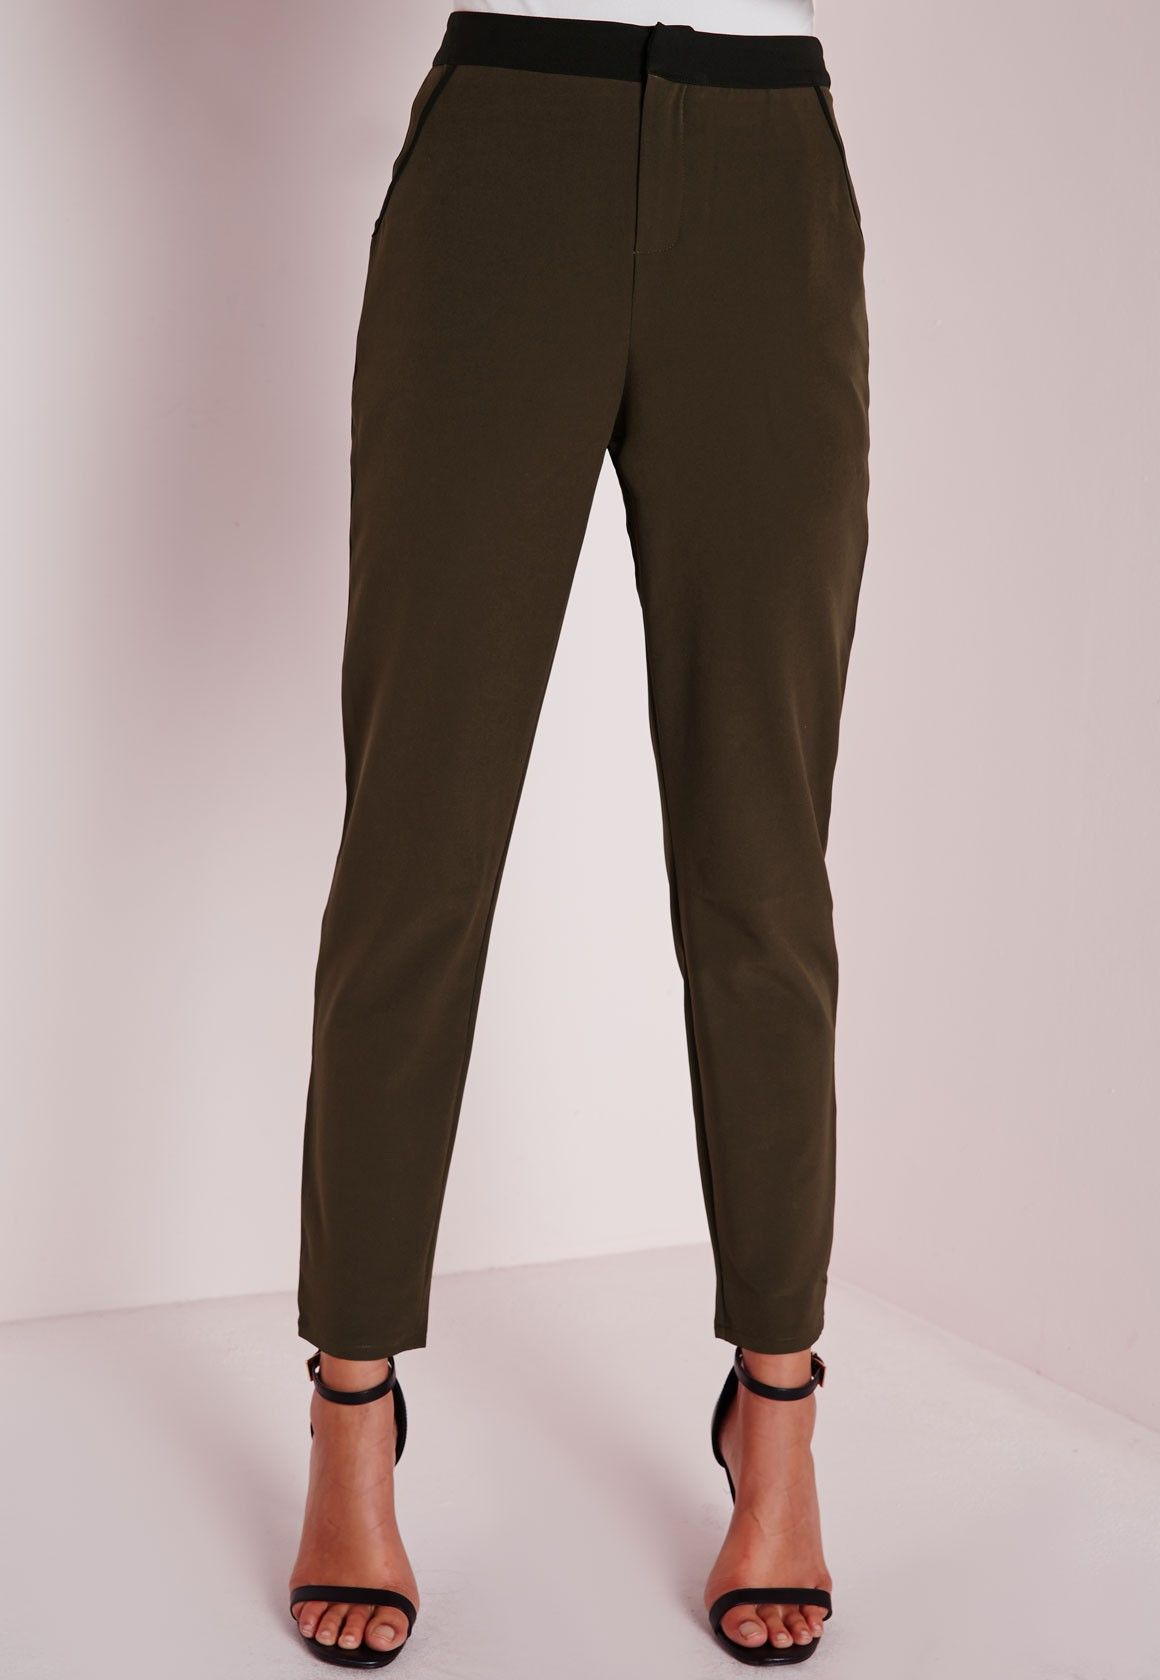 Contrast Waistband Cigarette Trousers Khaki - Cigarette - Trousers - Missguided